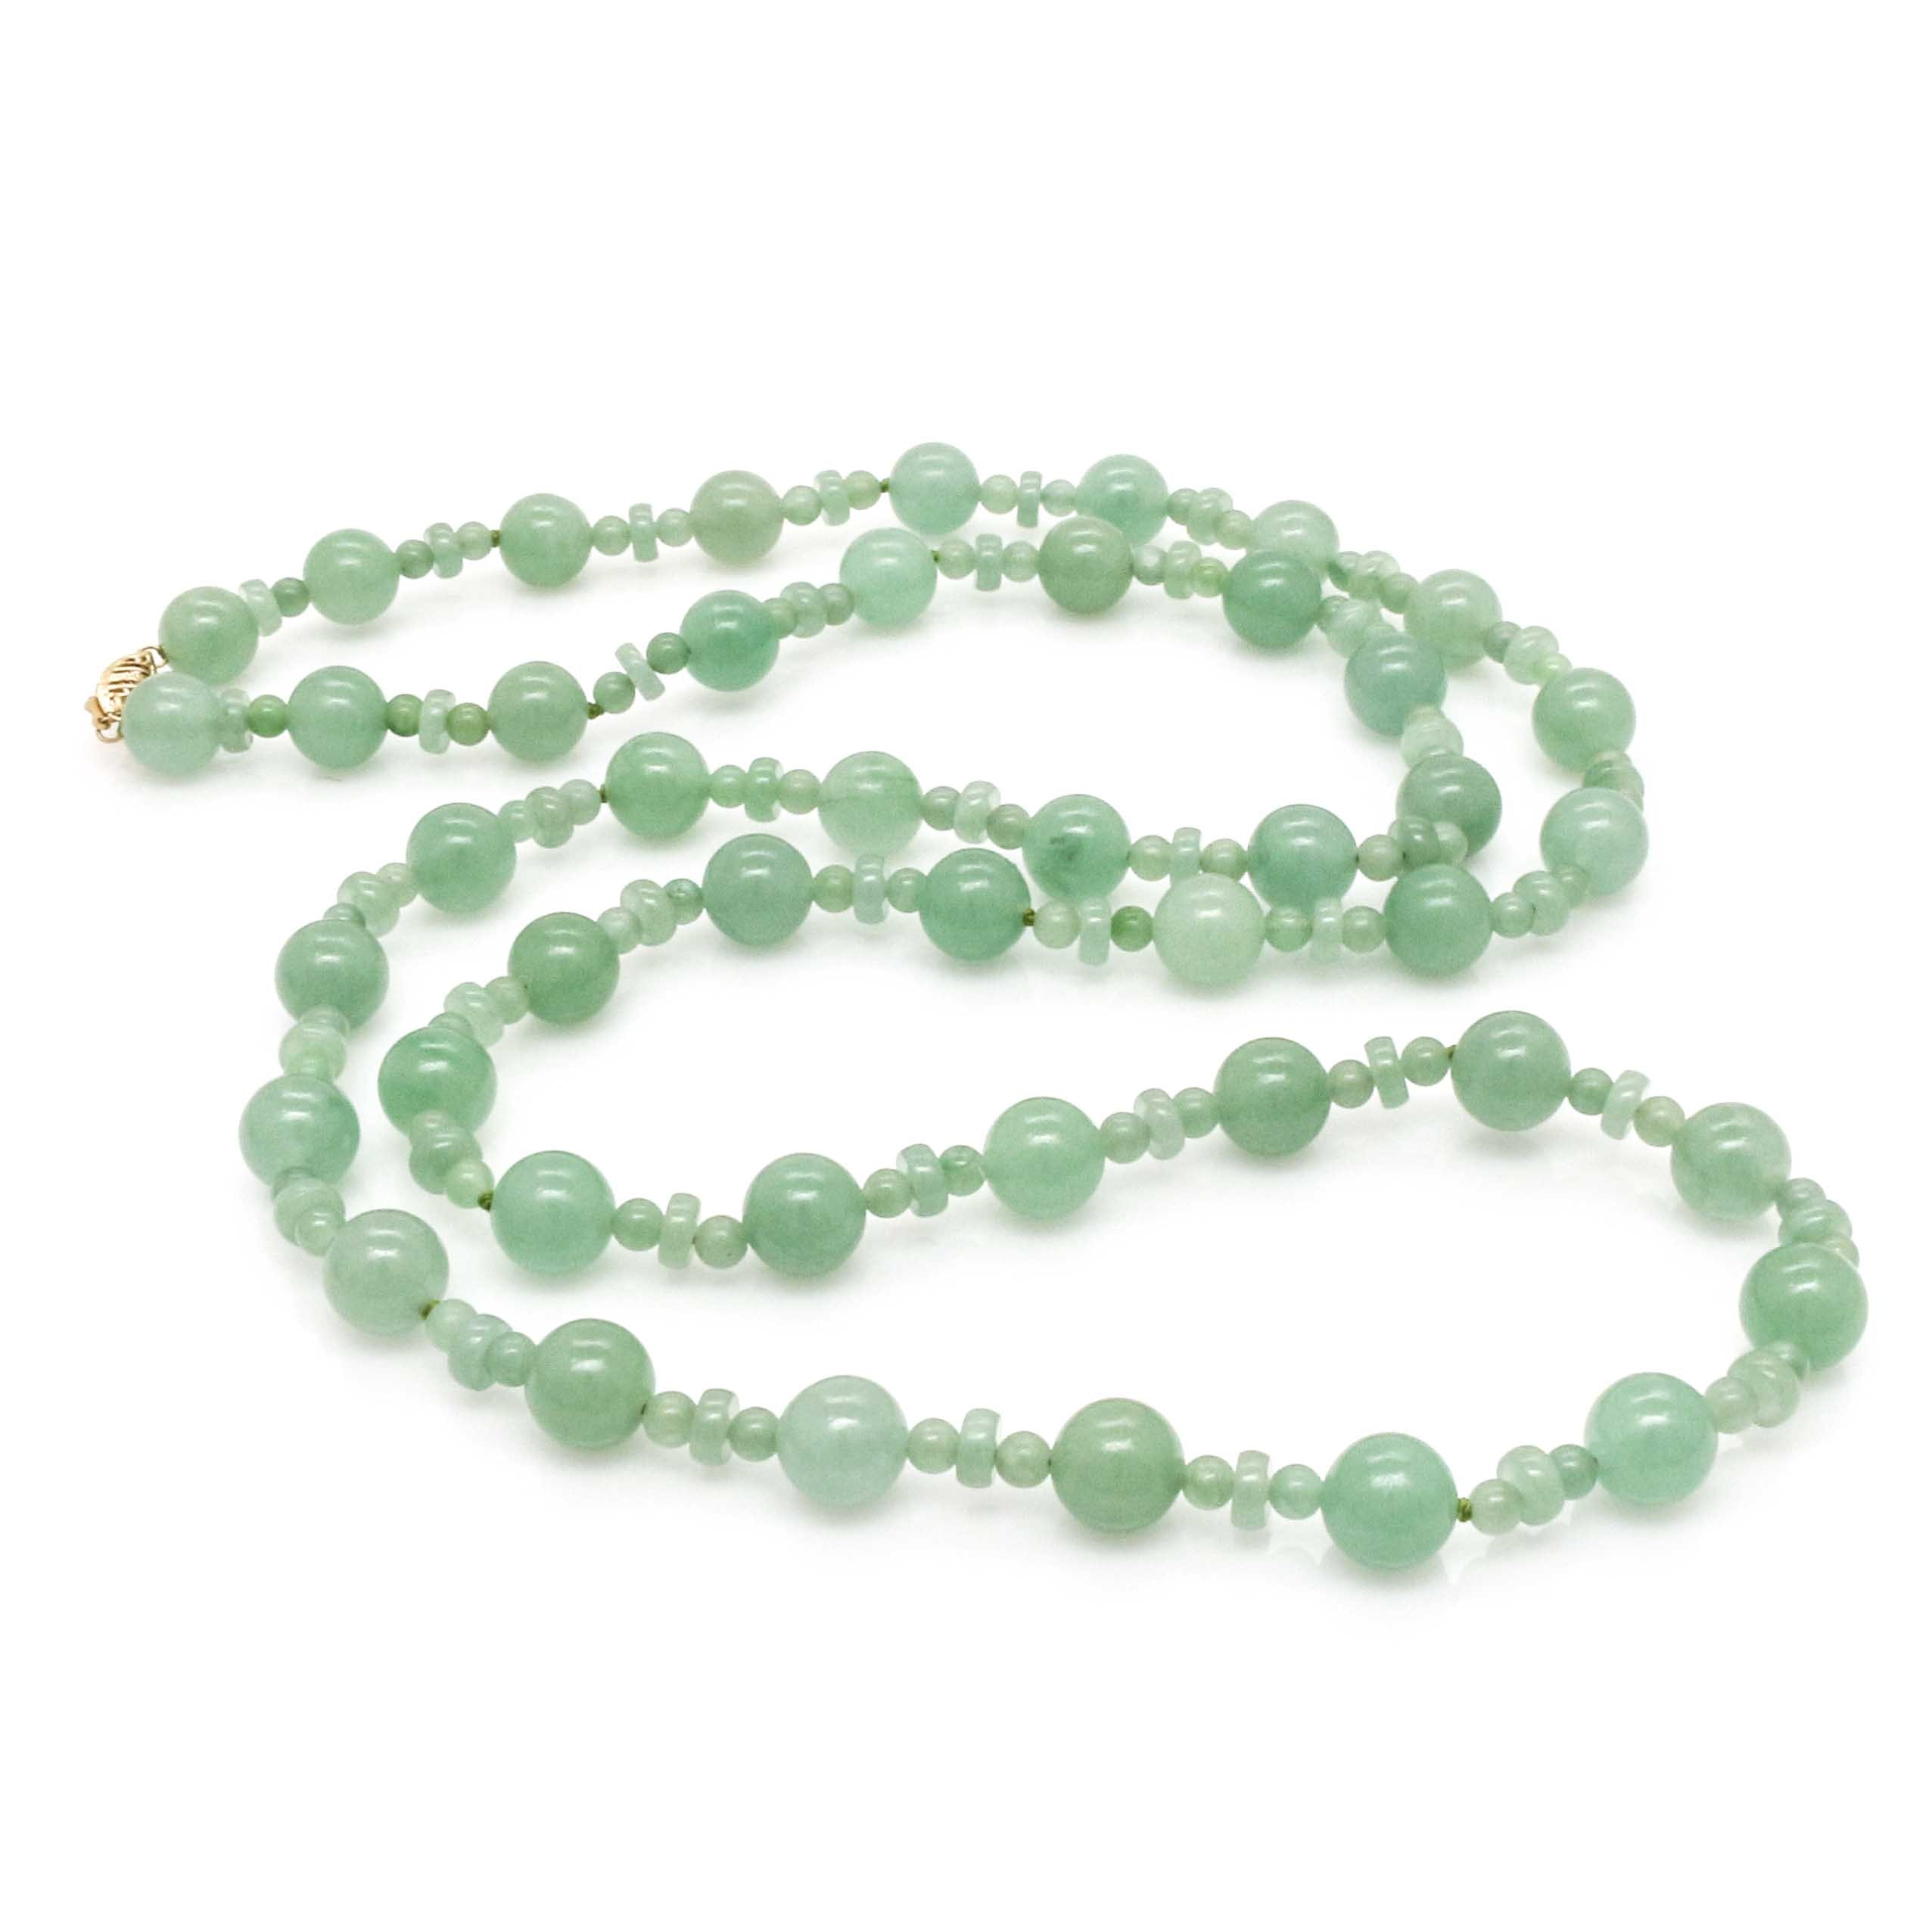 Jadeite Bead Necklace With 14K Yellow Gold Clasp by Gold Stone Jewelry